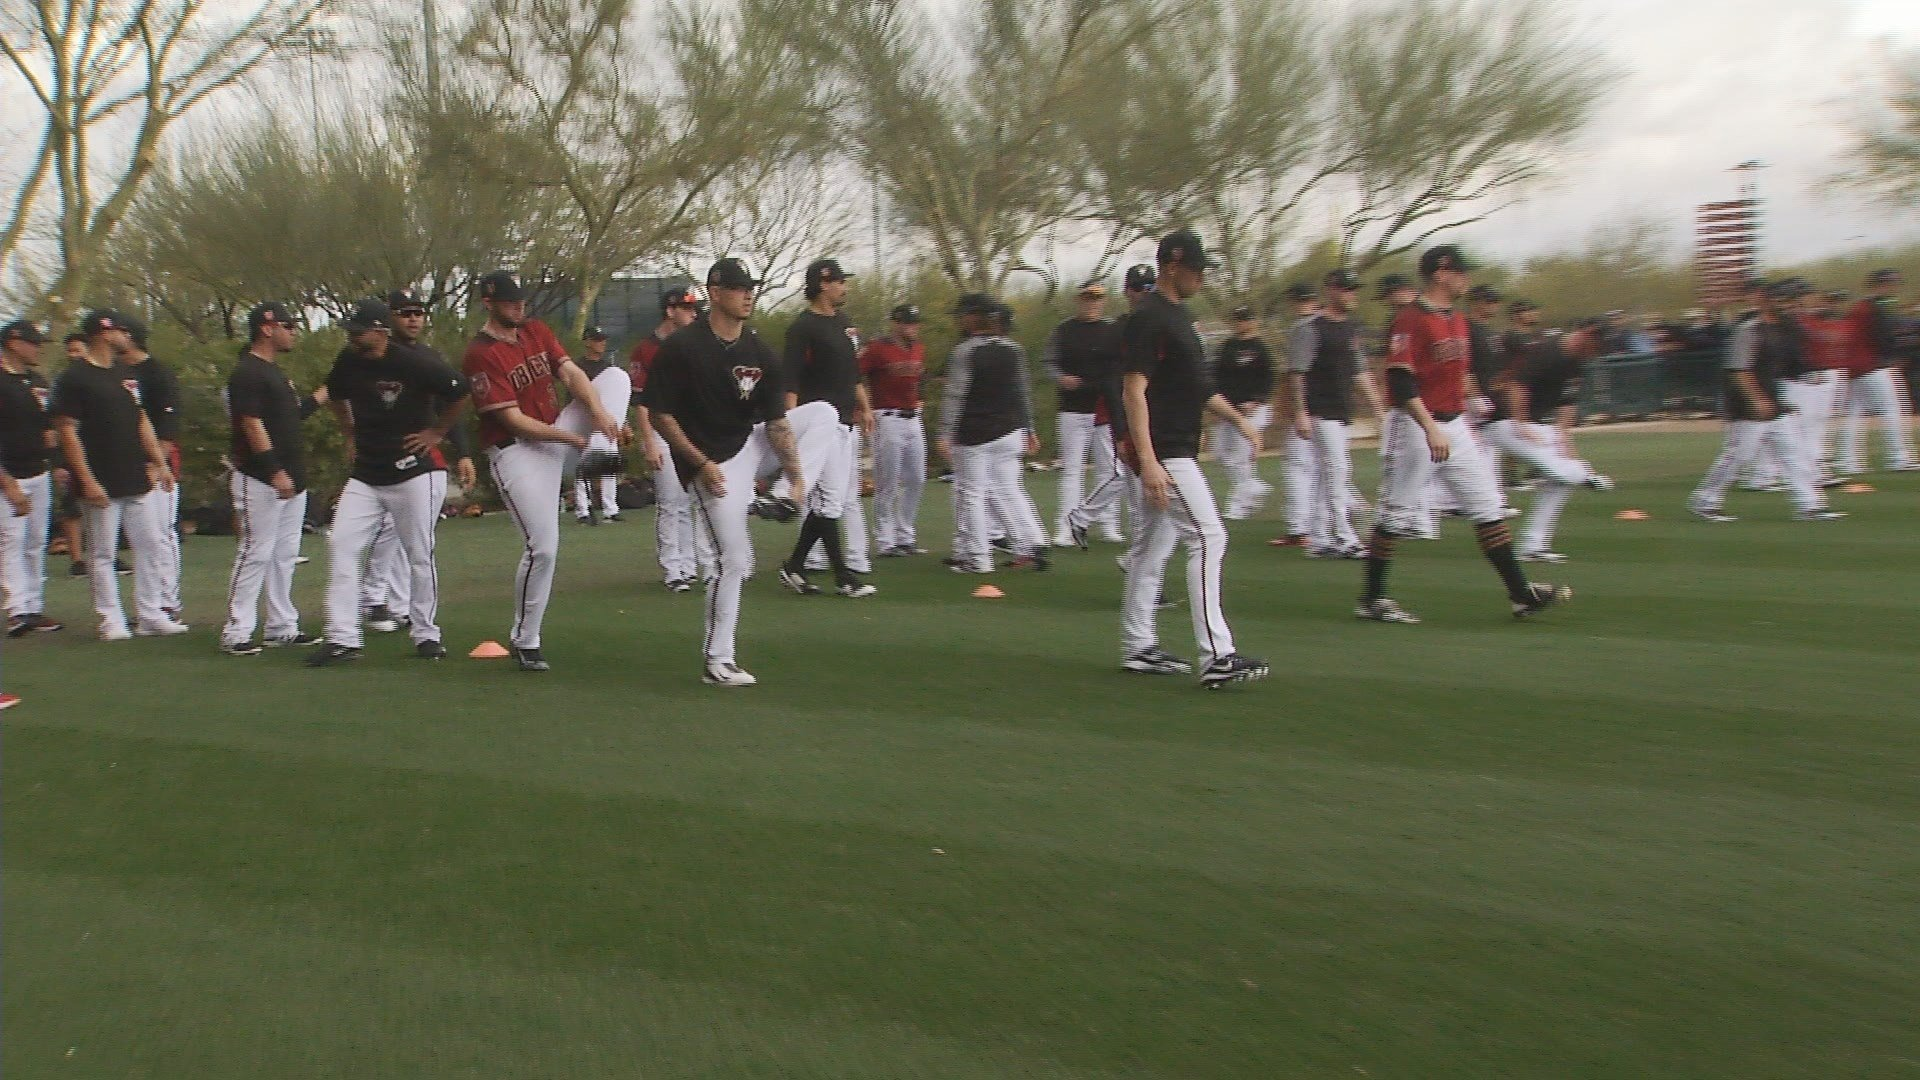 Full squad workouts began today at the Dbacks camp. (Source: 3TV/CBS 5 News)